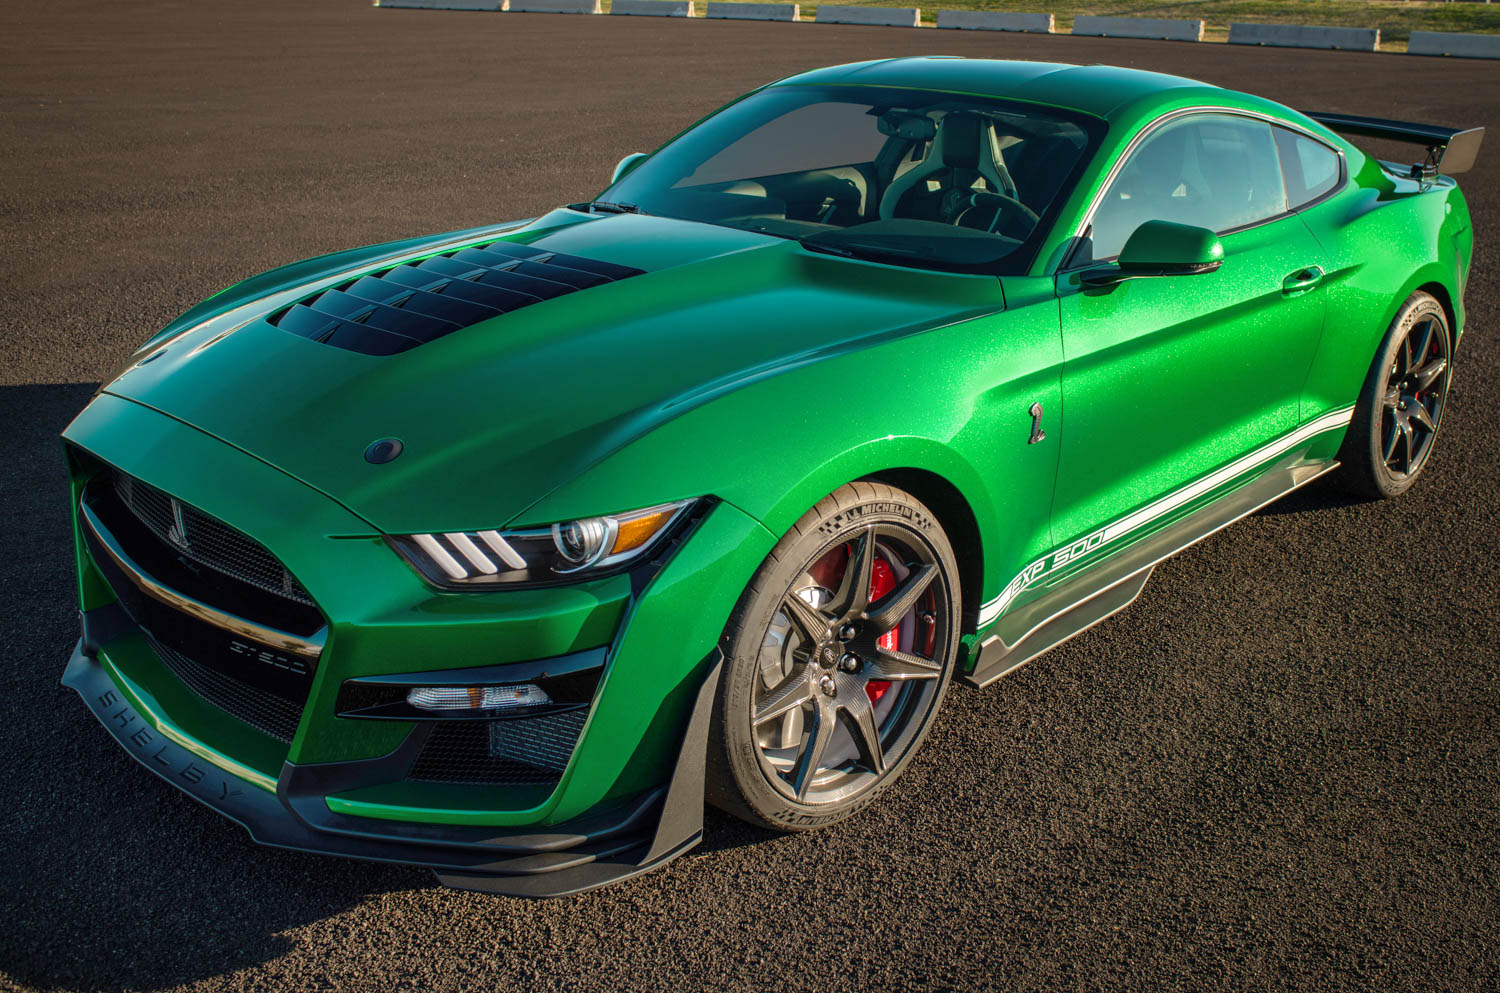 2020 Mustang Shelby GT500 VIN001